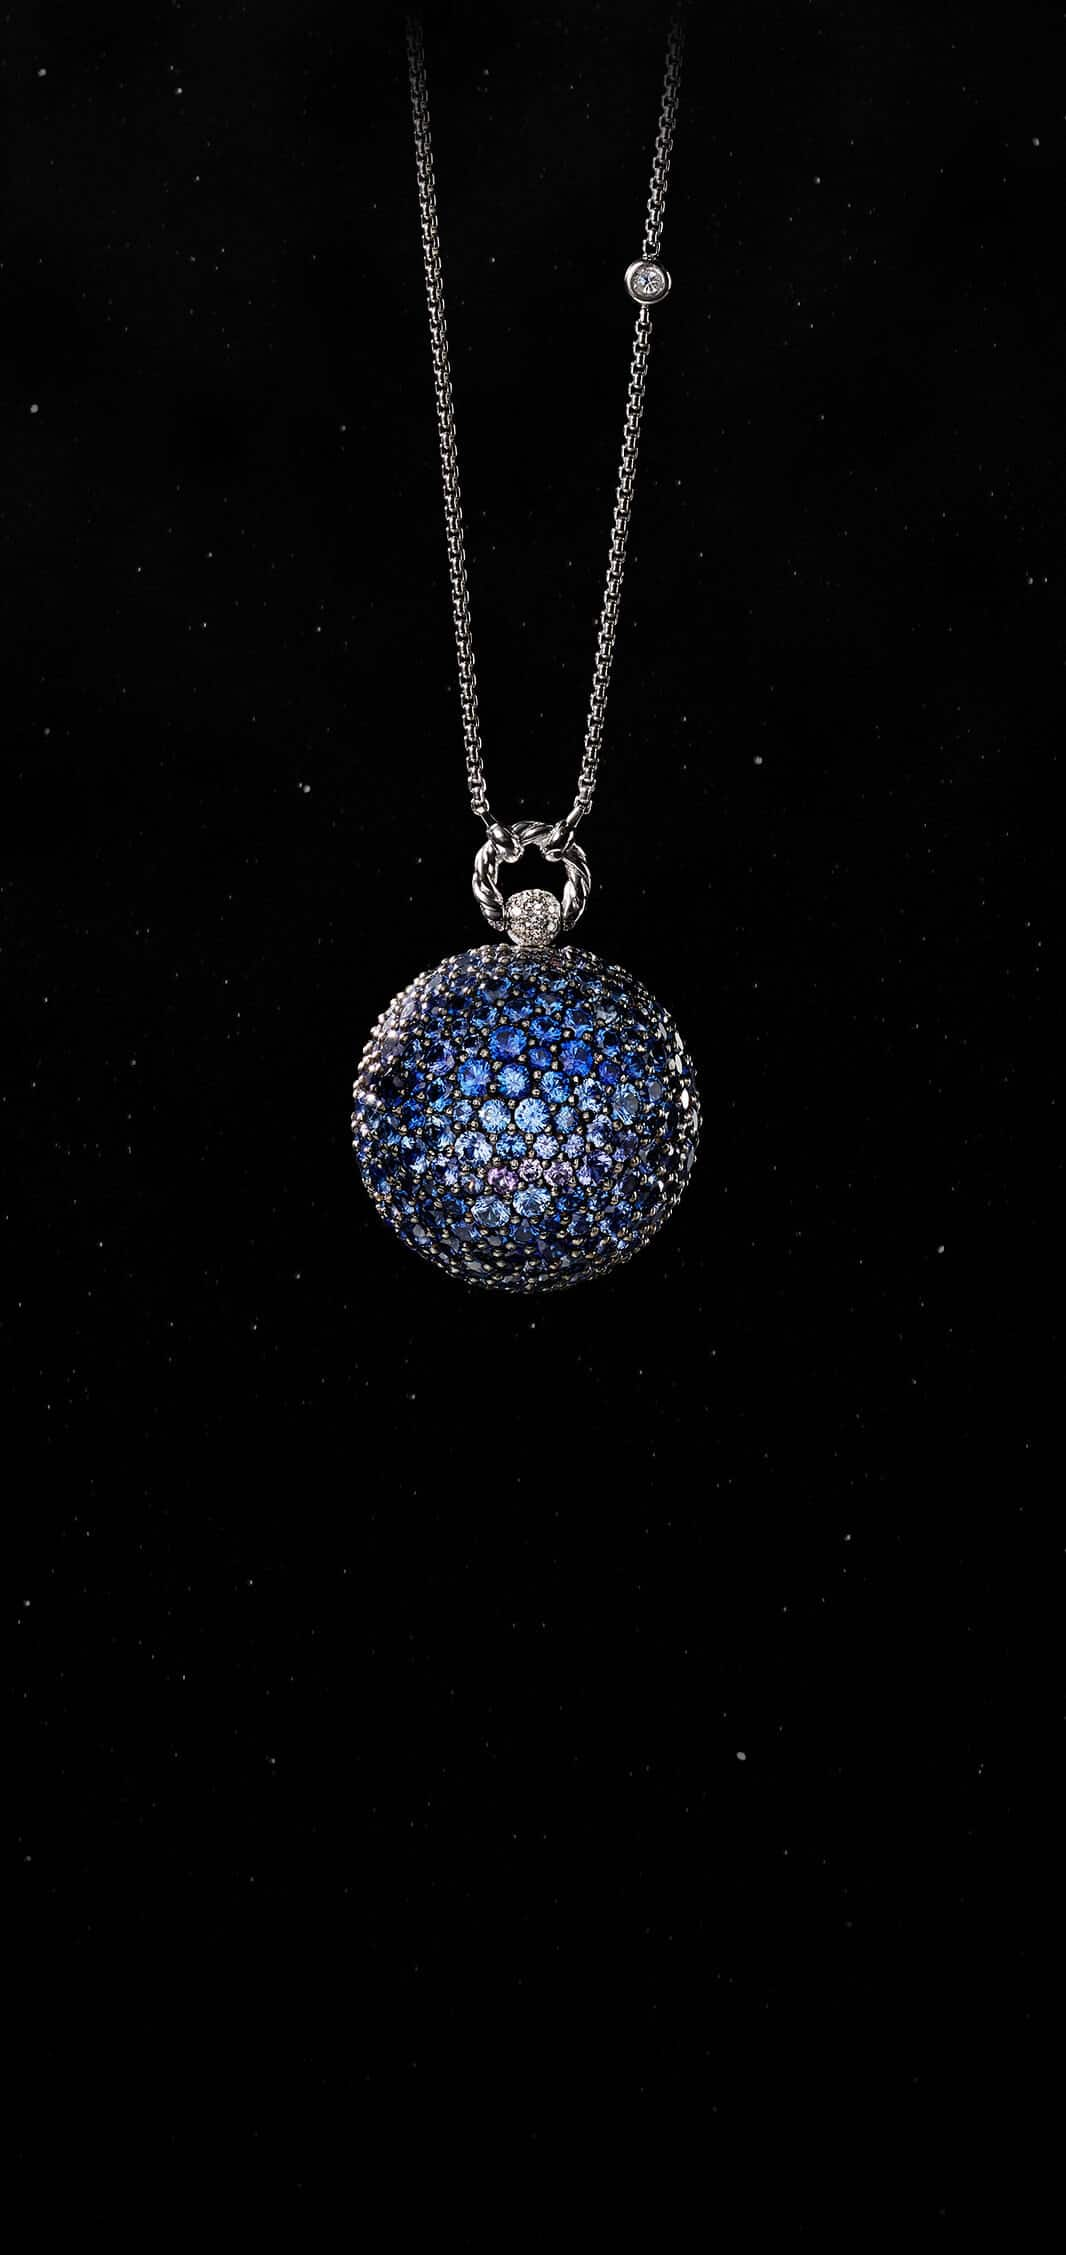 A color photo shows the David Yurman Solari Planet Neptune pendant necklace in front of a starry night sky. The pendant is crafted from rhodium-plated 18K white gold with blue and purple sapphires.